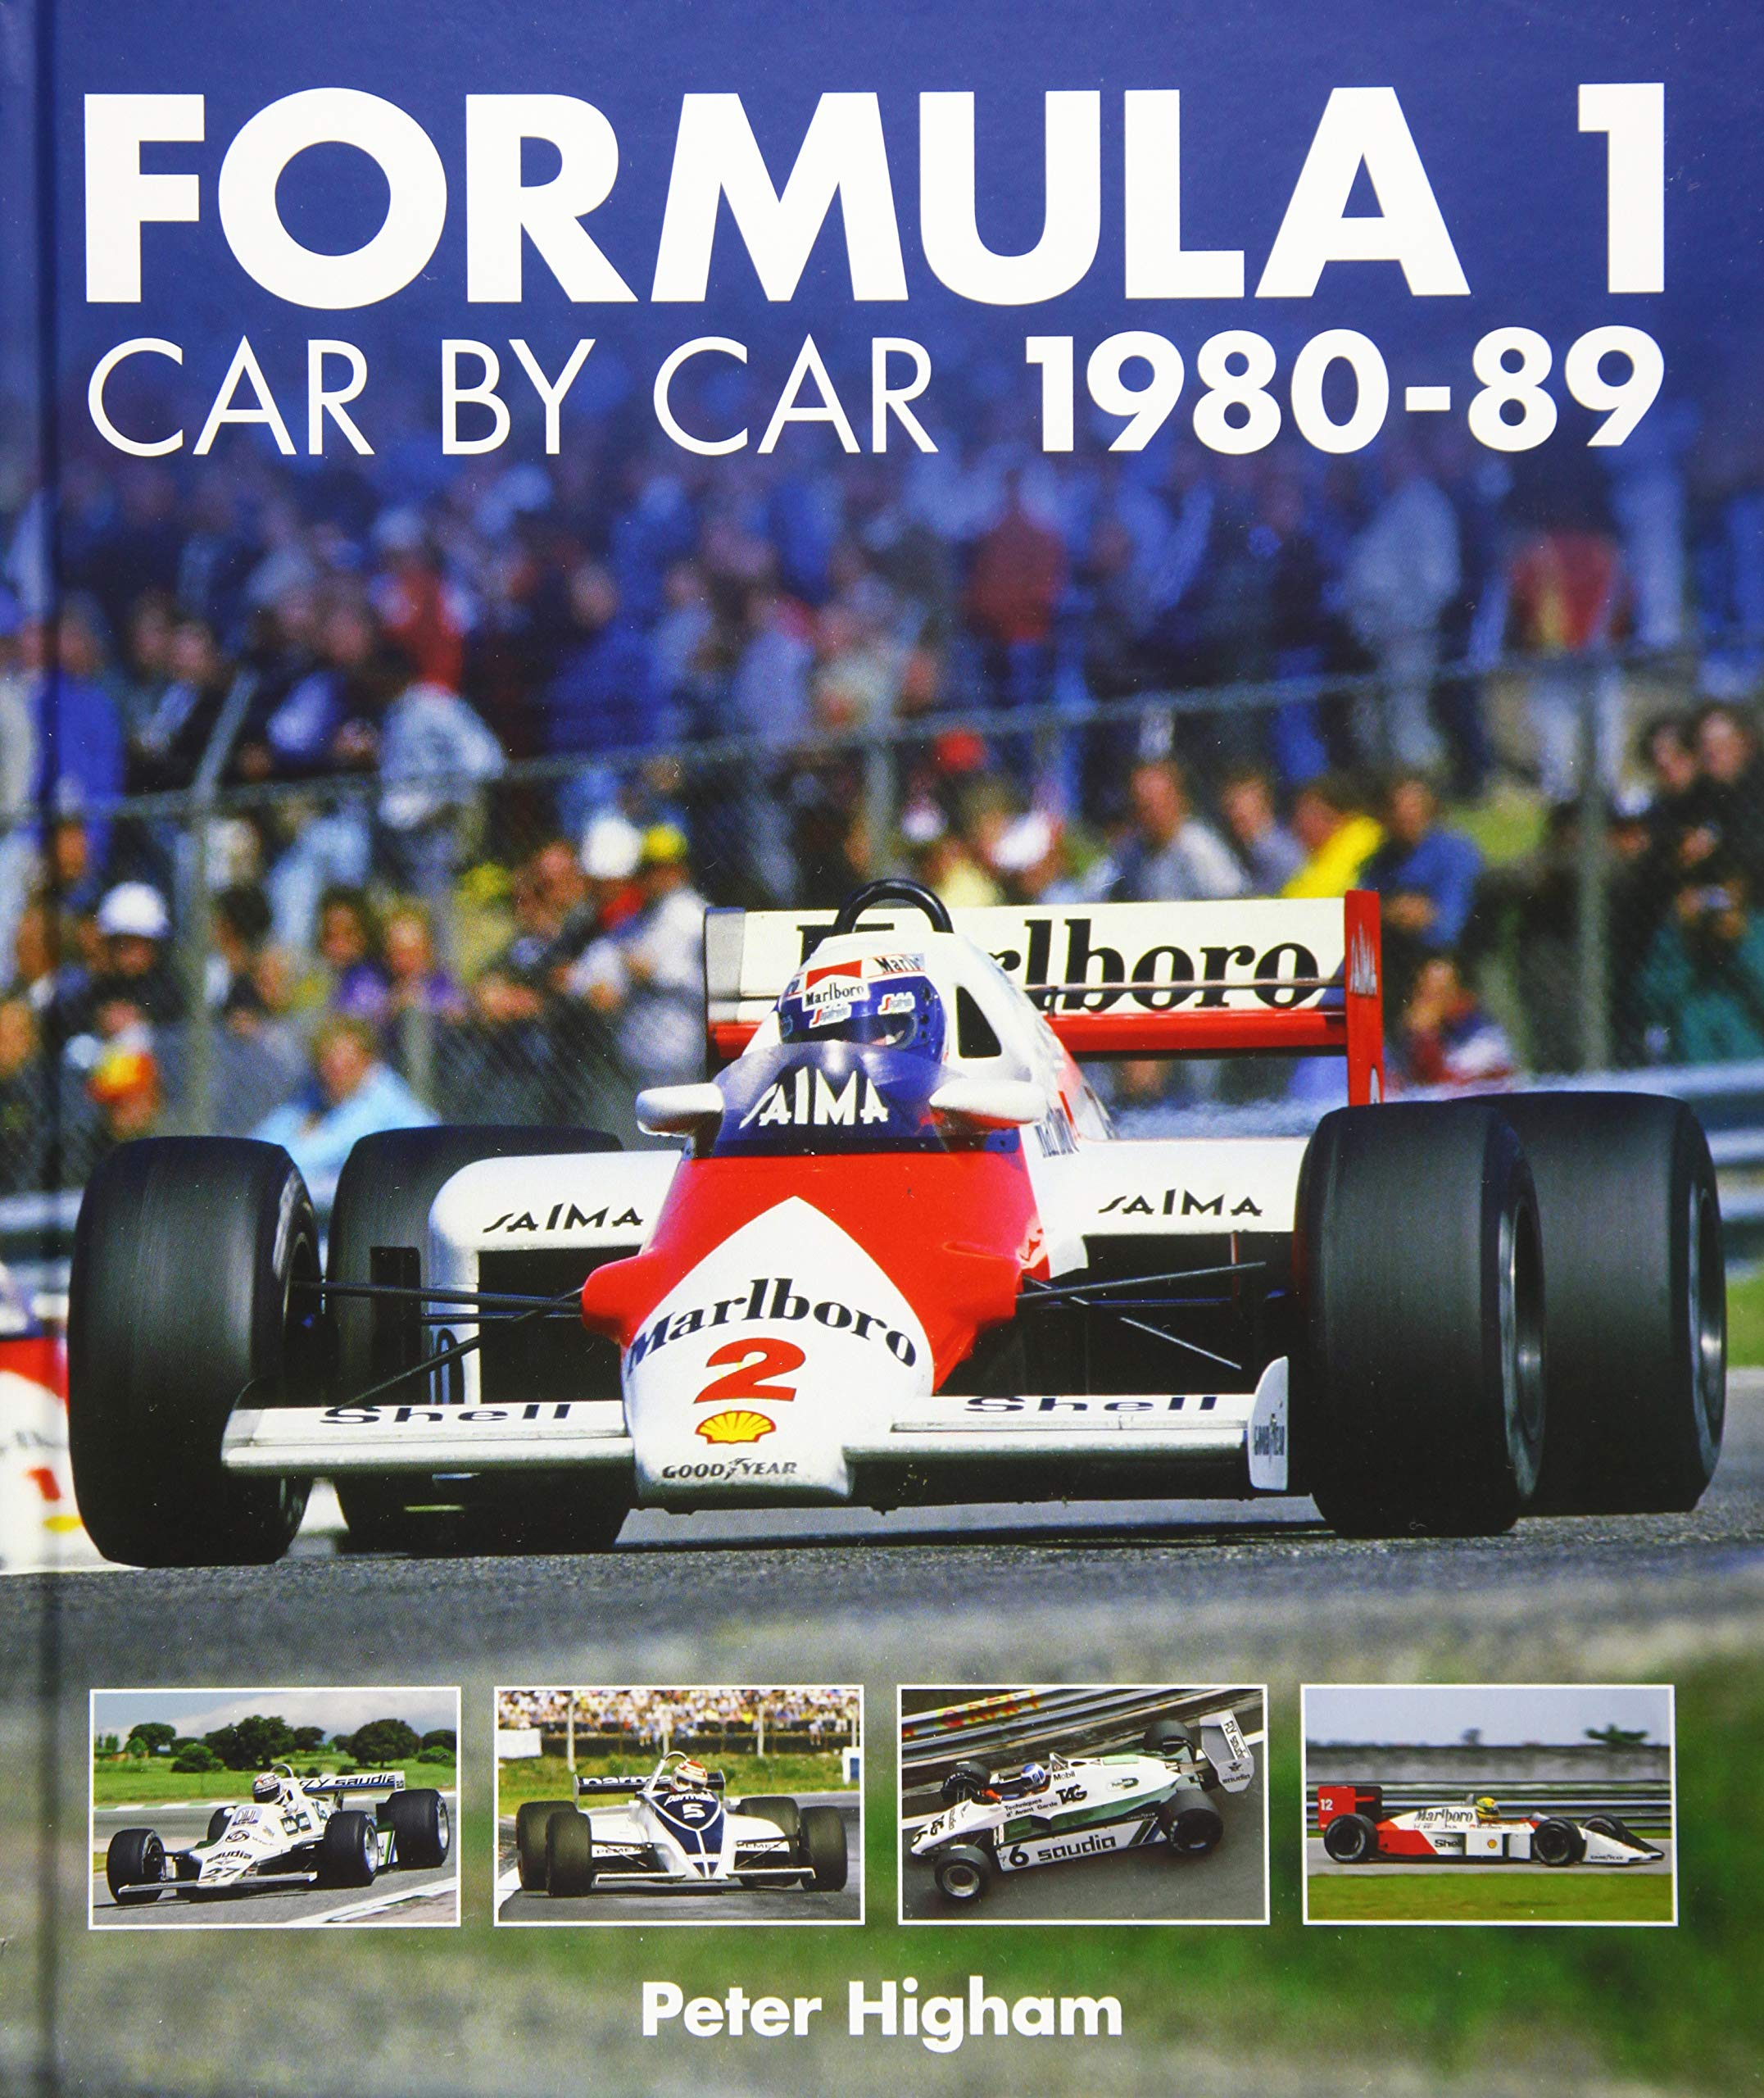 Image OfFormula 1: Car By Car 1980-89